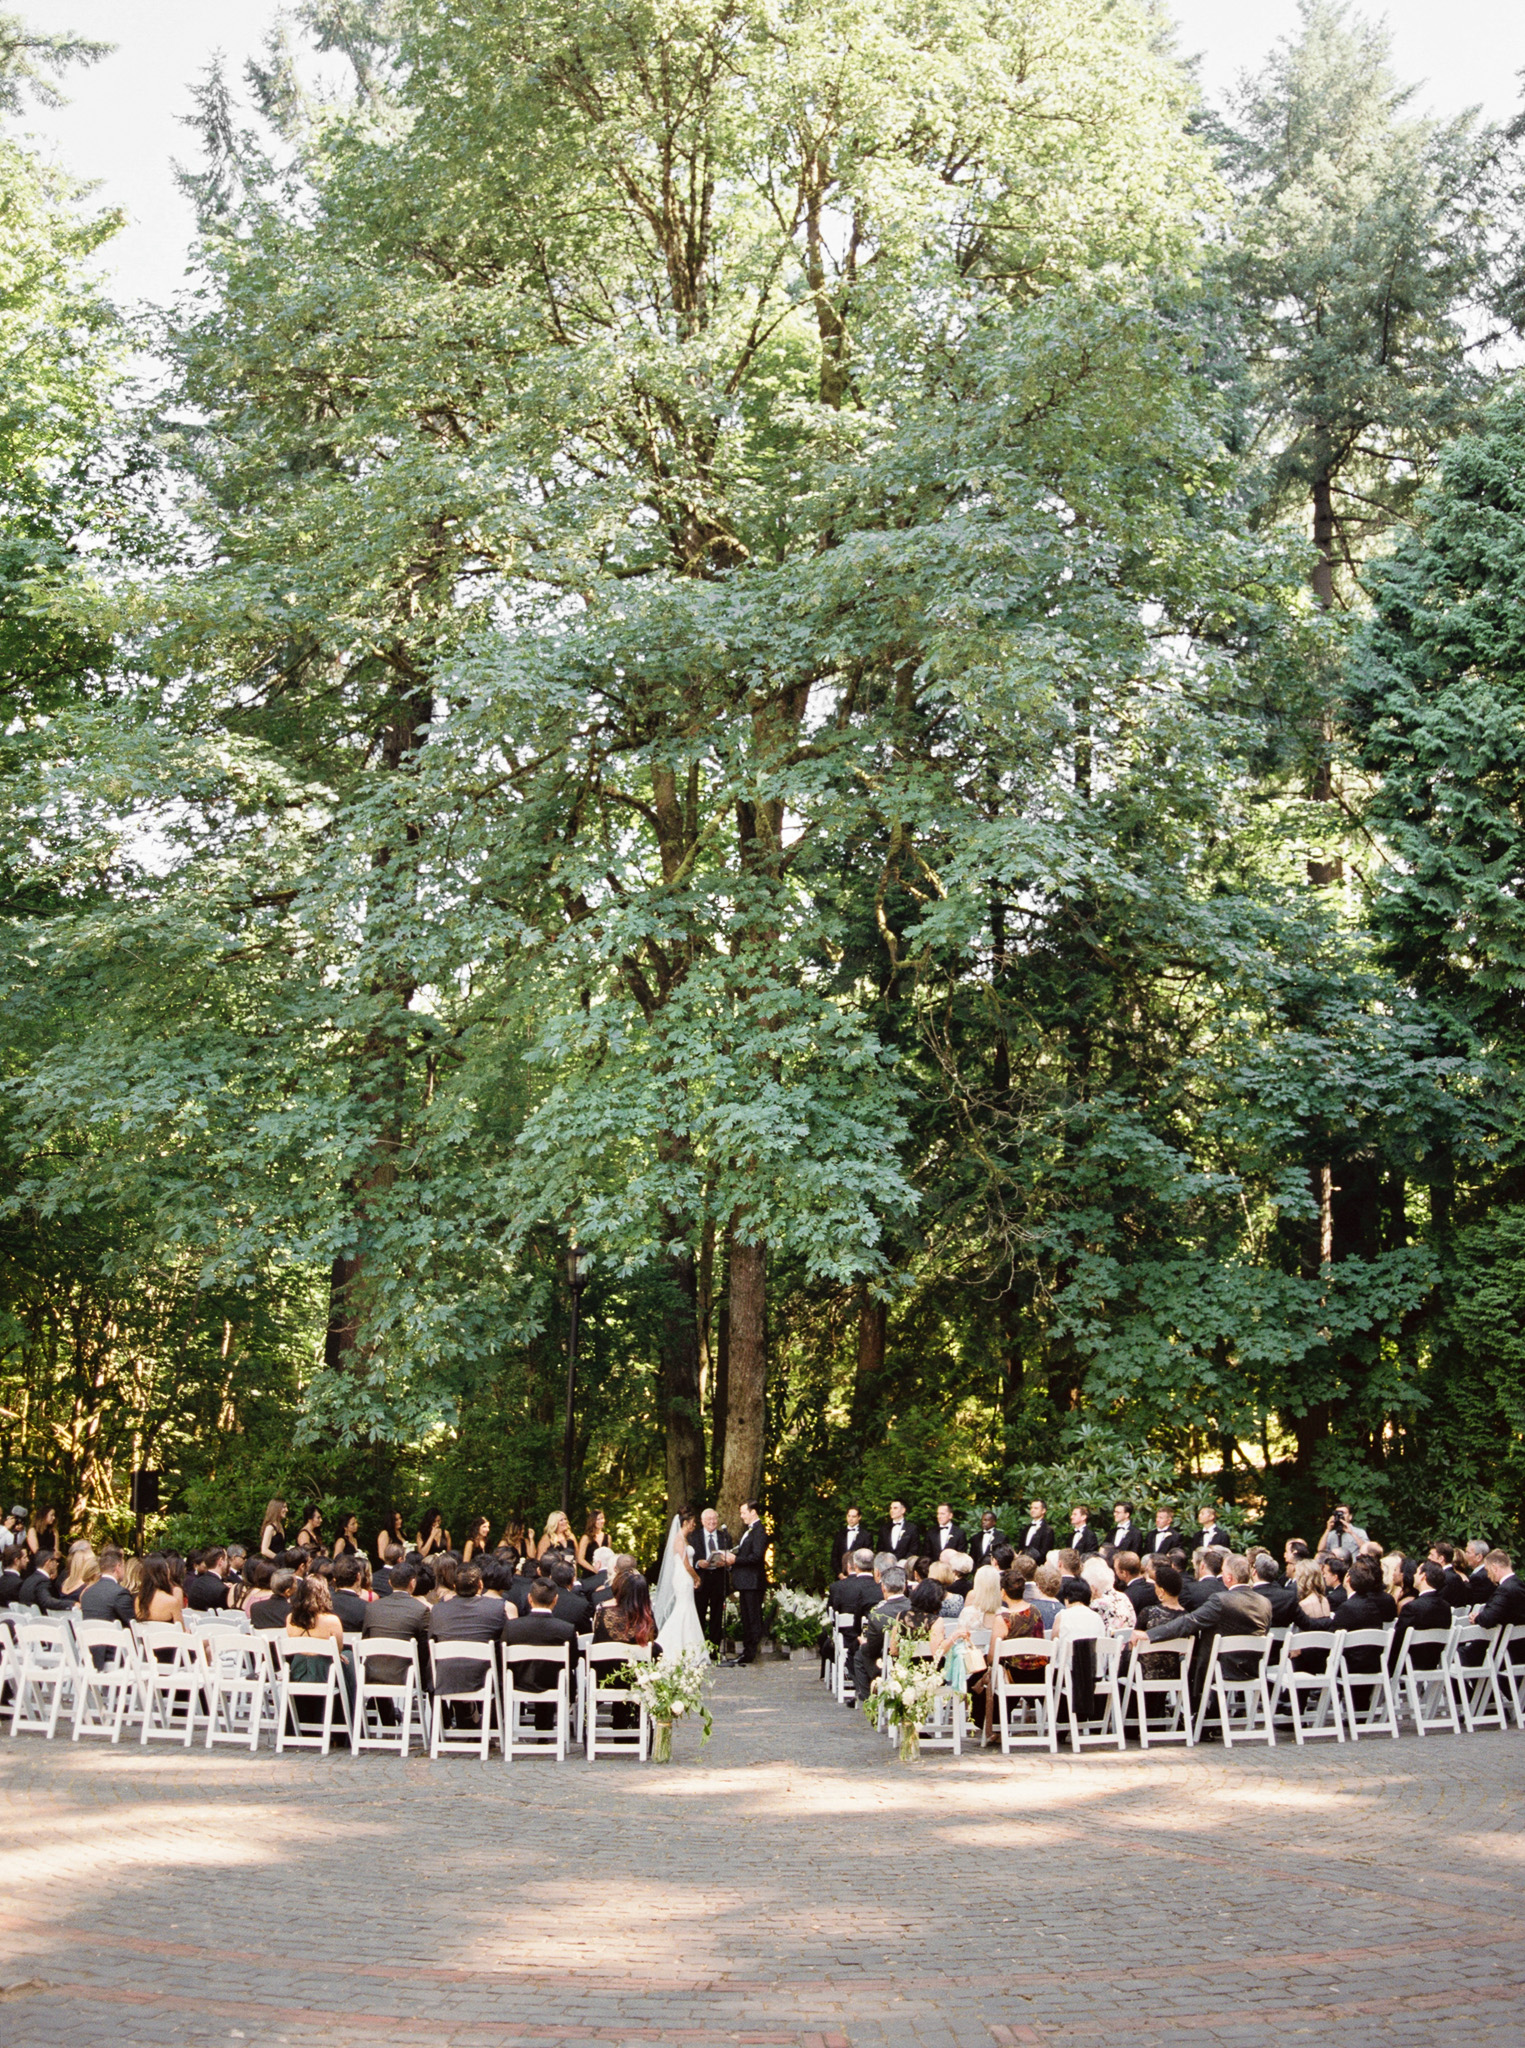 130OutliveCreative_Travel_Photographer_Videographer_Lewis&Clark_Oregon_Elegant_BlackTie_Destination_Wedding.jpg